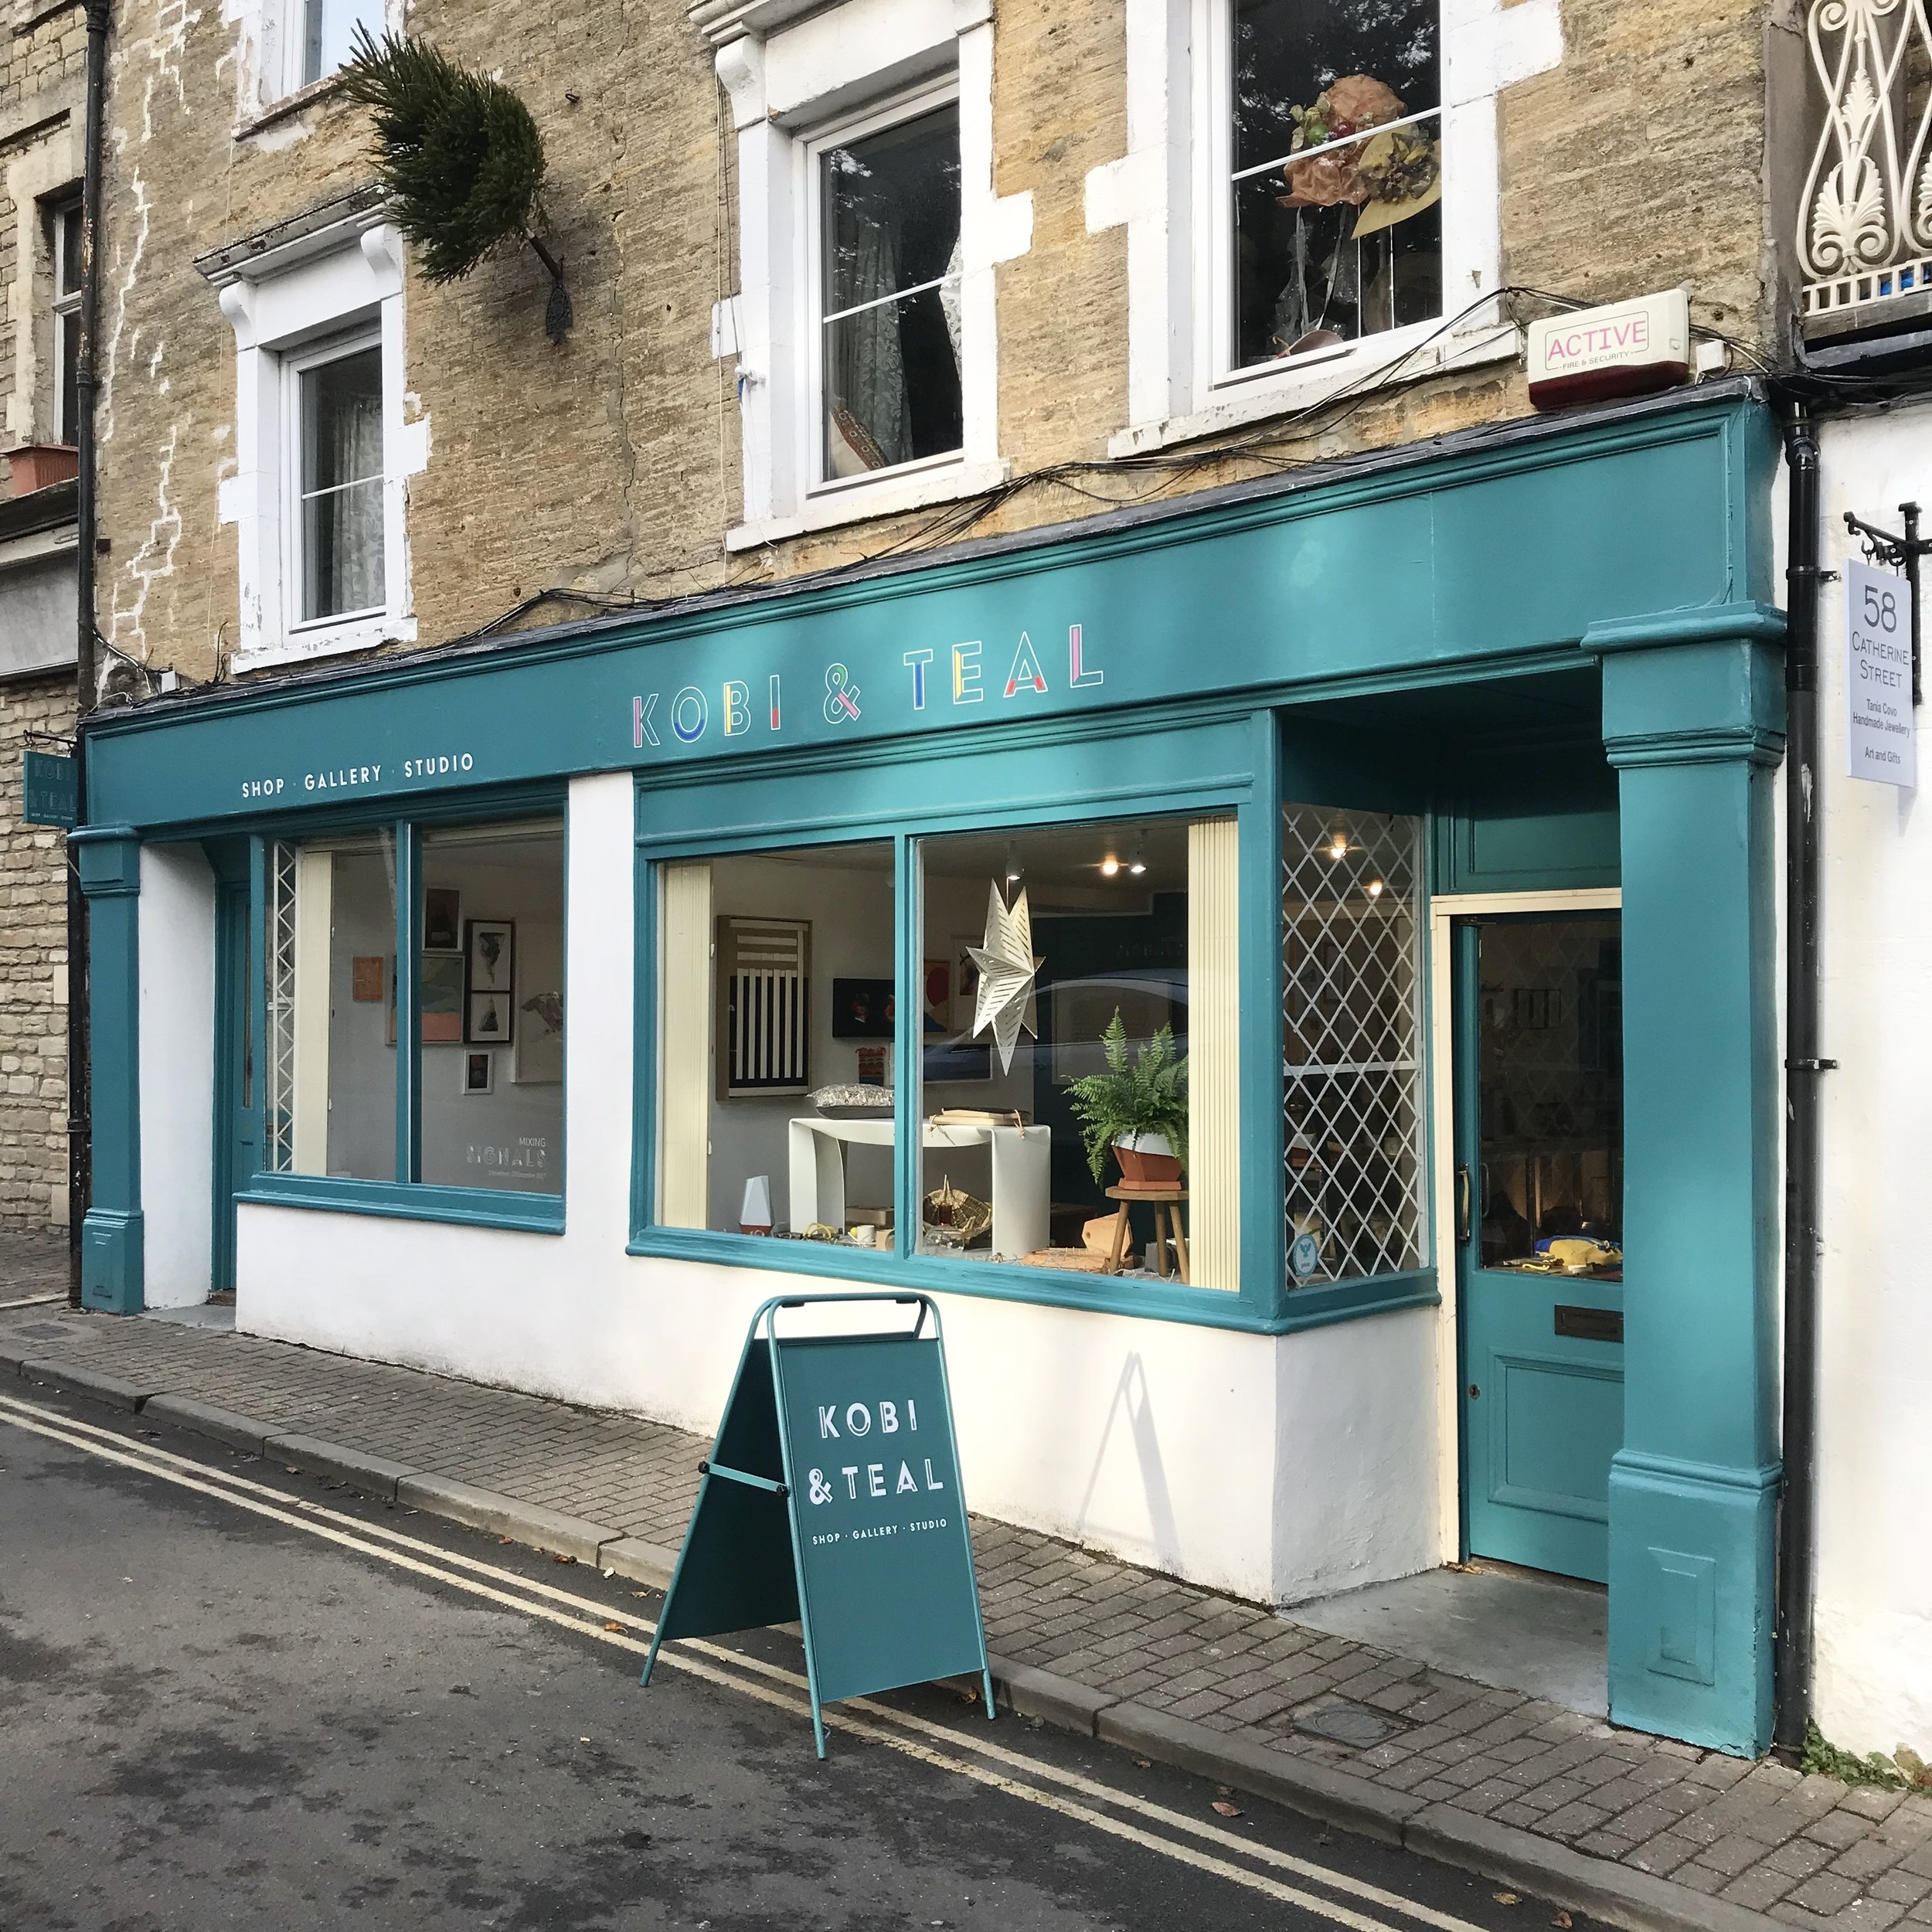 Shopping - Find out a little bit more about the businesses here in St Catherine's